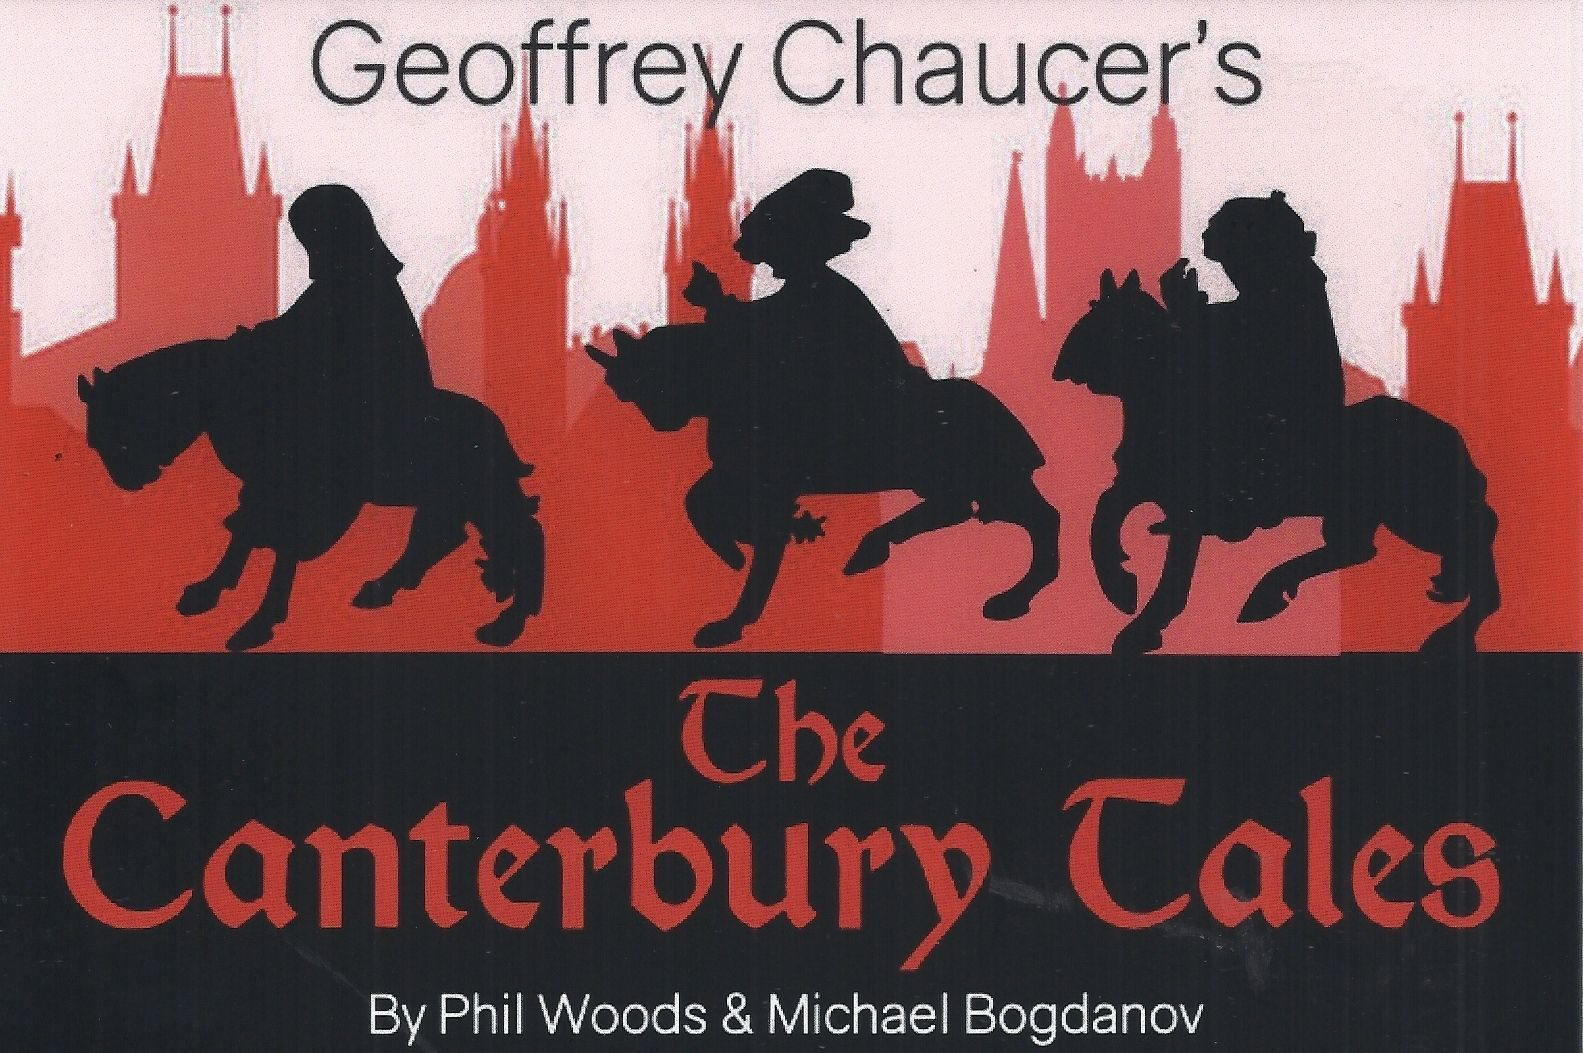 14 to 16 November - The Canterbury Tales